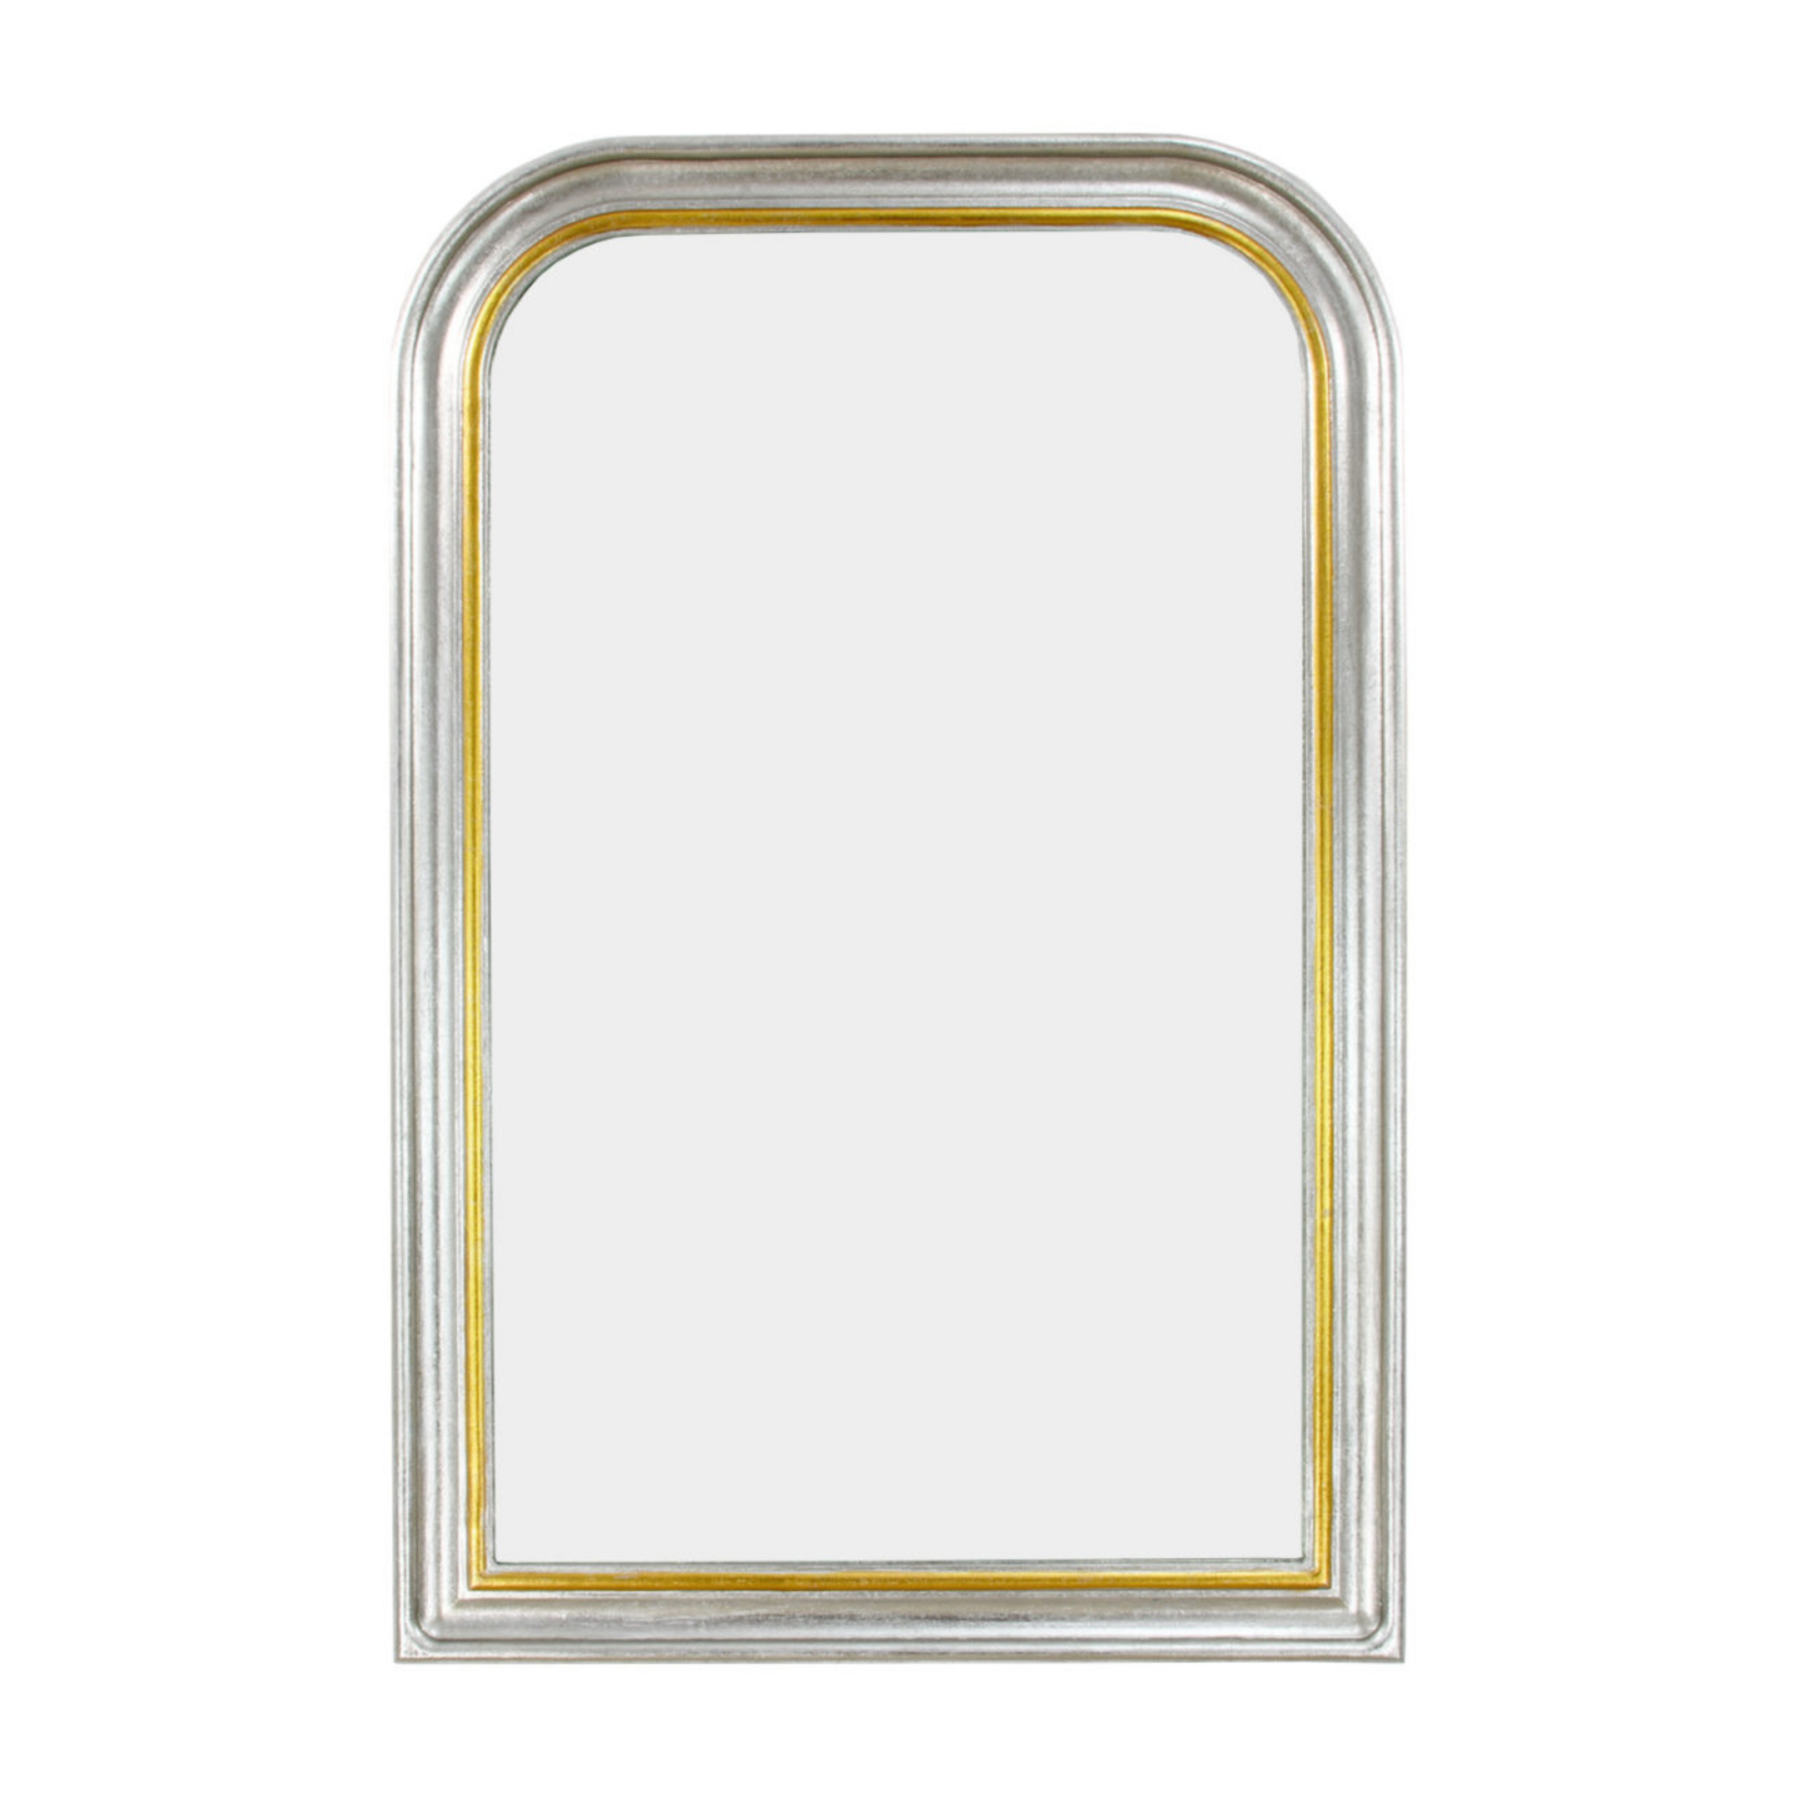 Louis Philippe style wall mirror